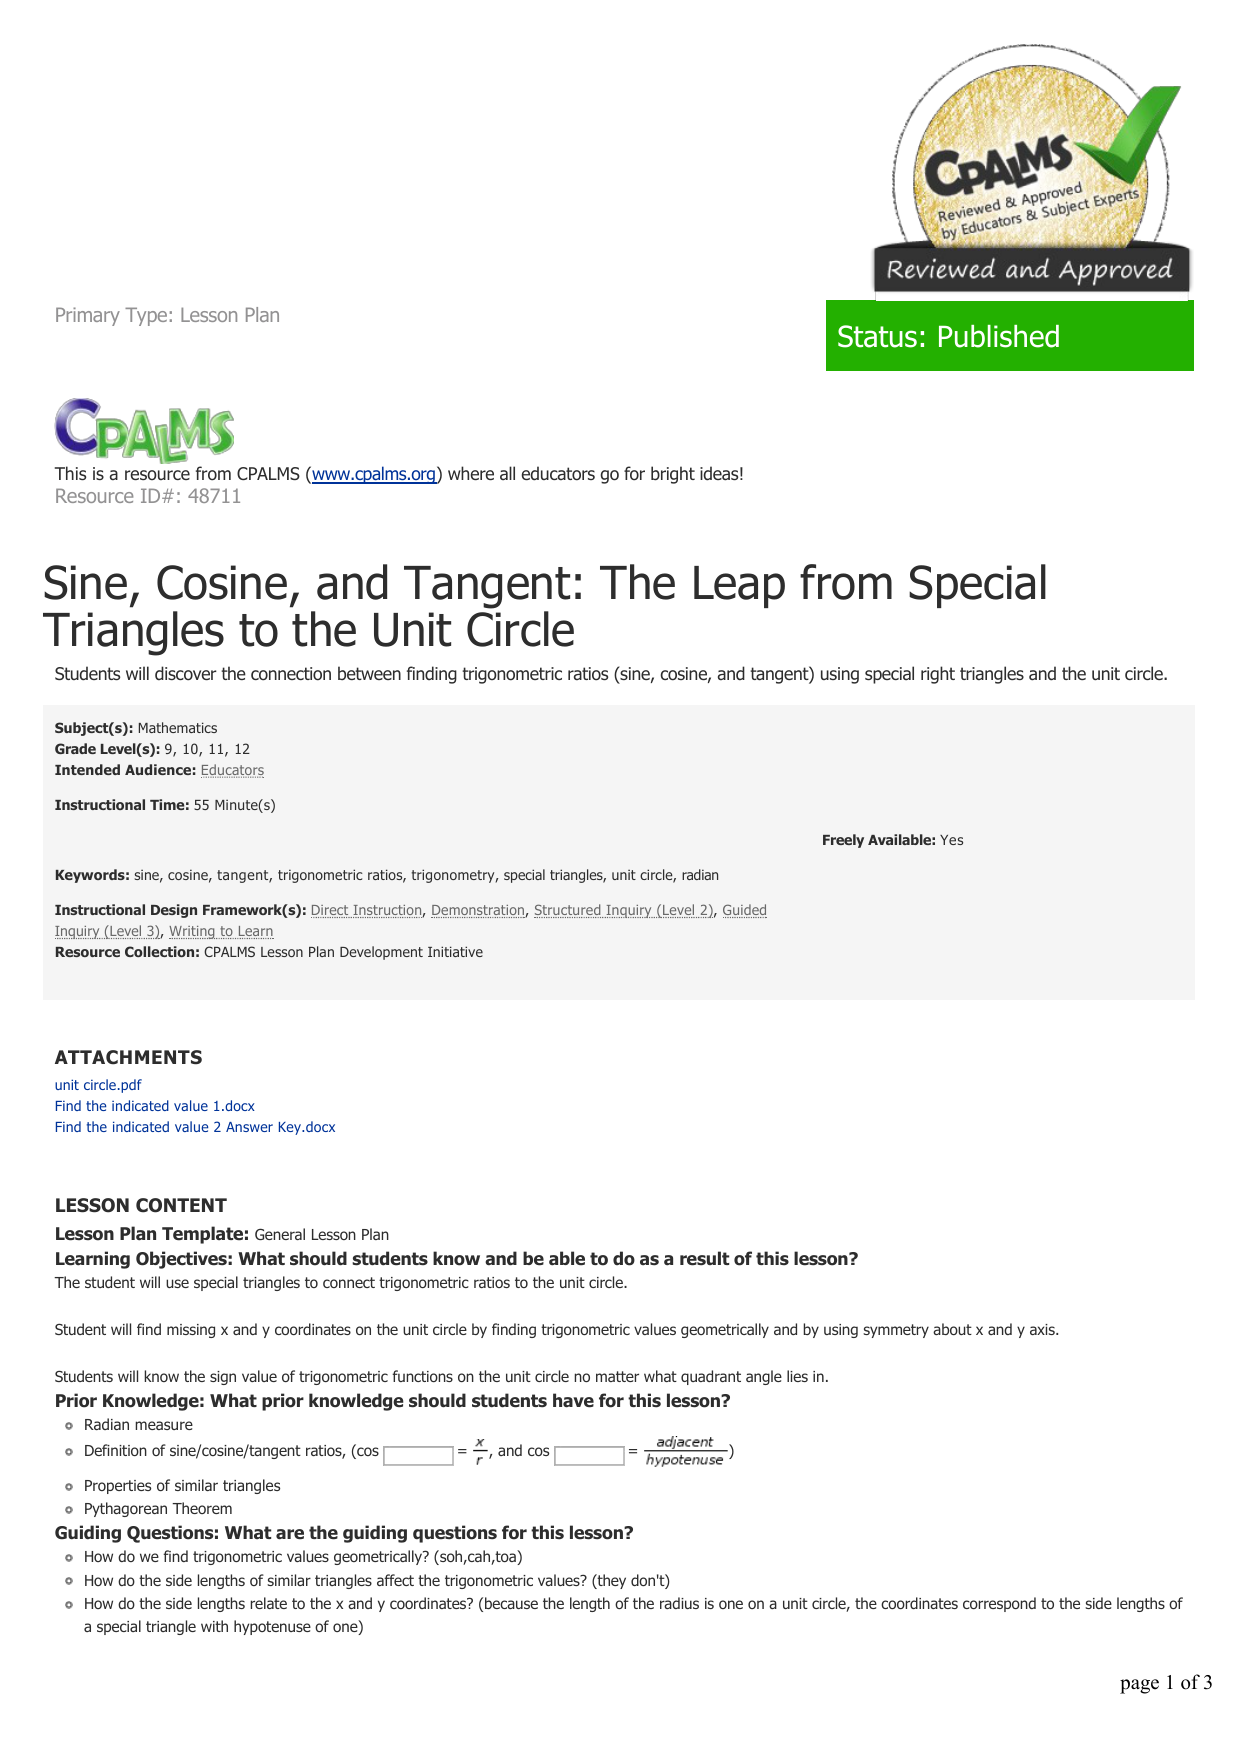 Sine, Cosine, and Tangent: The Leap from Special